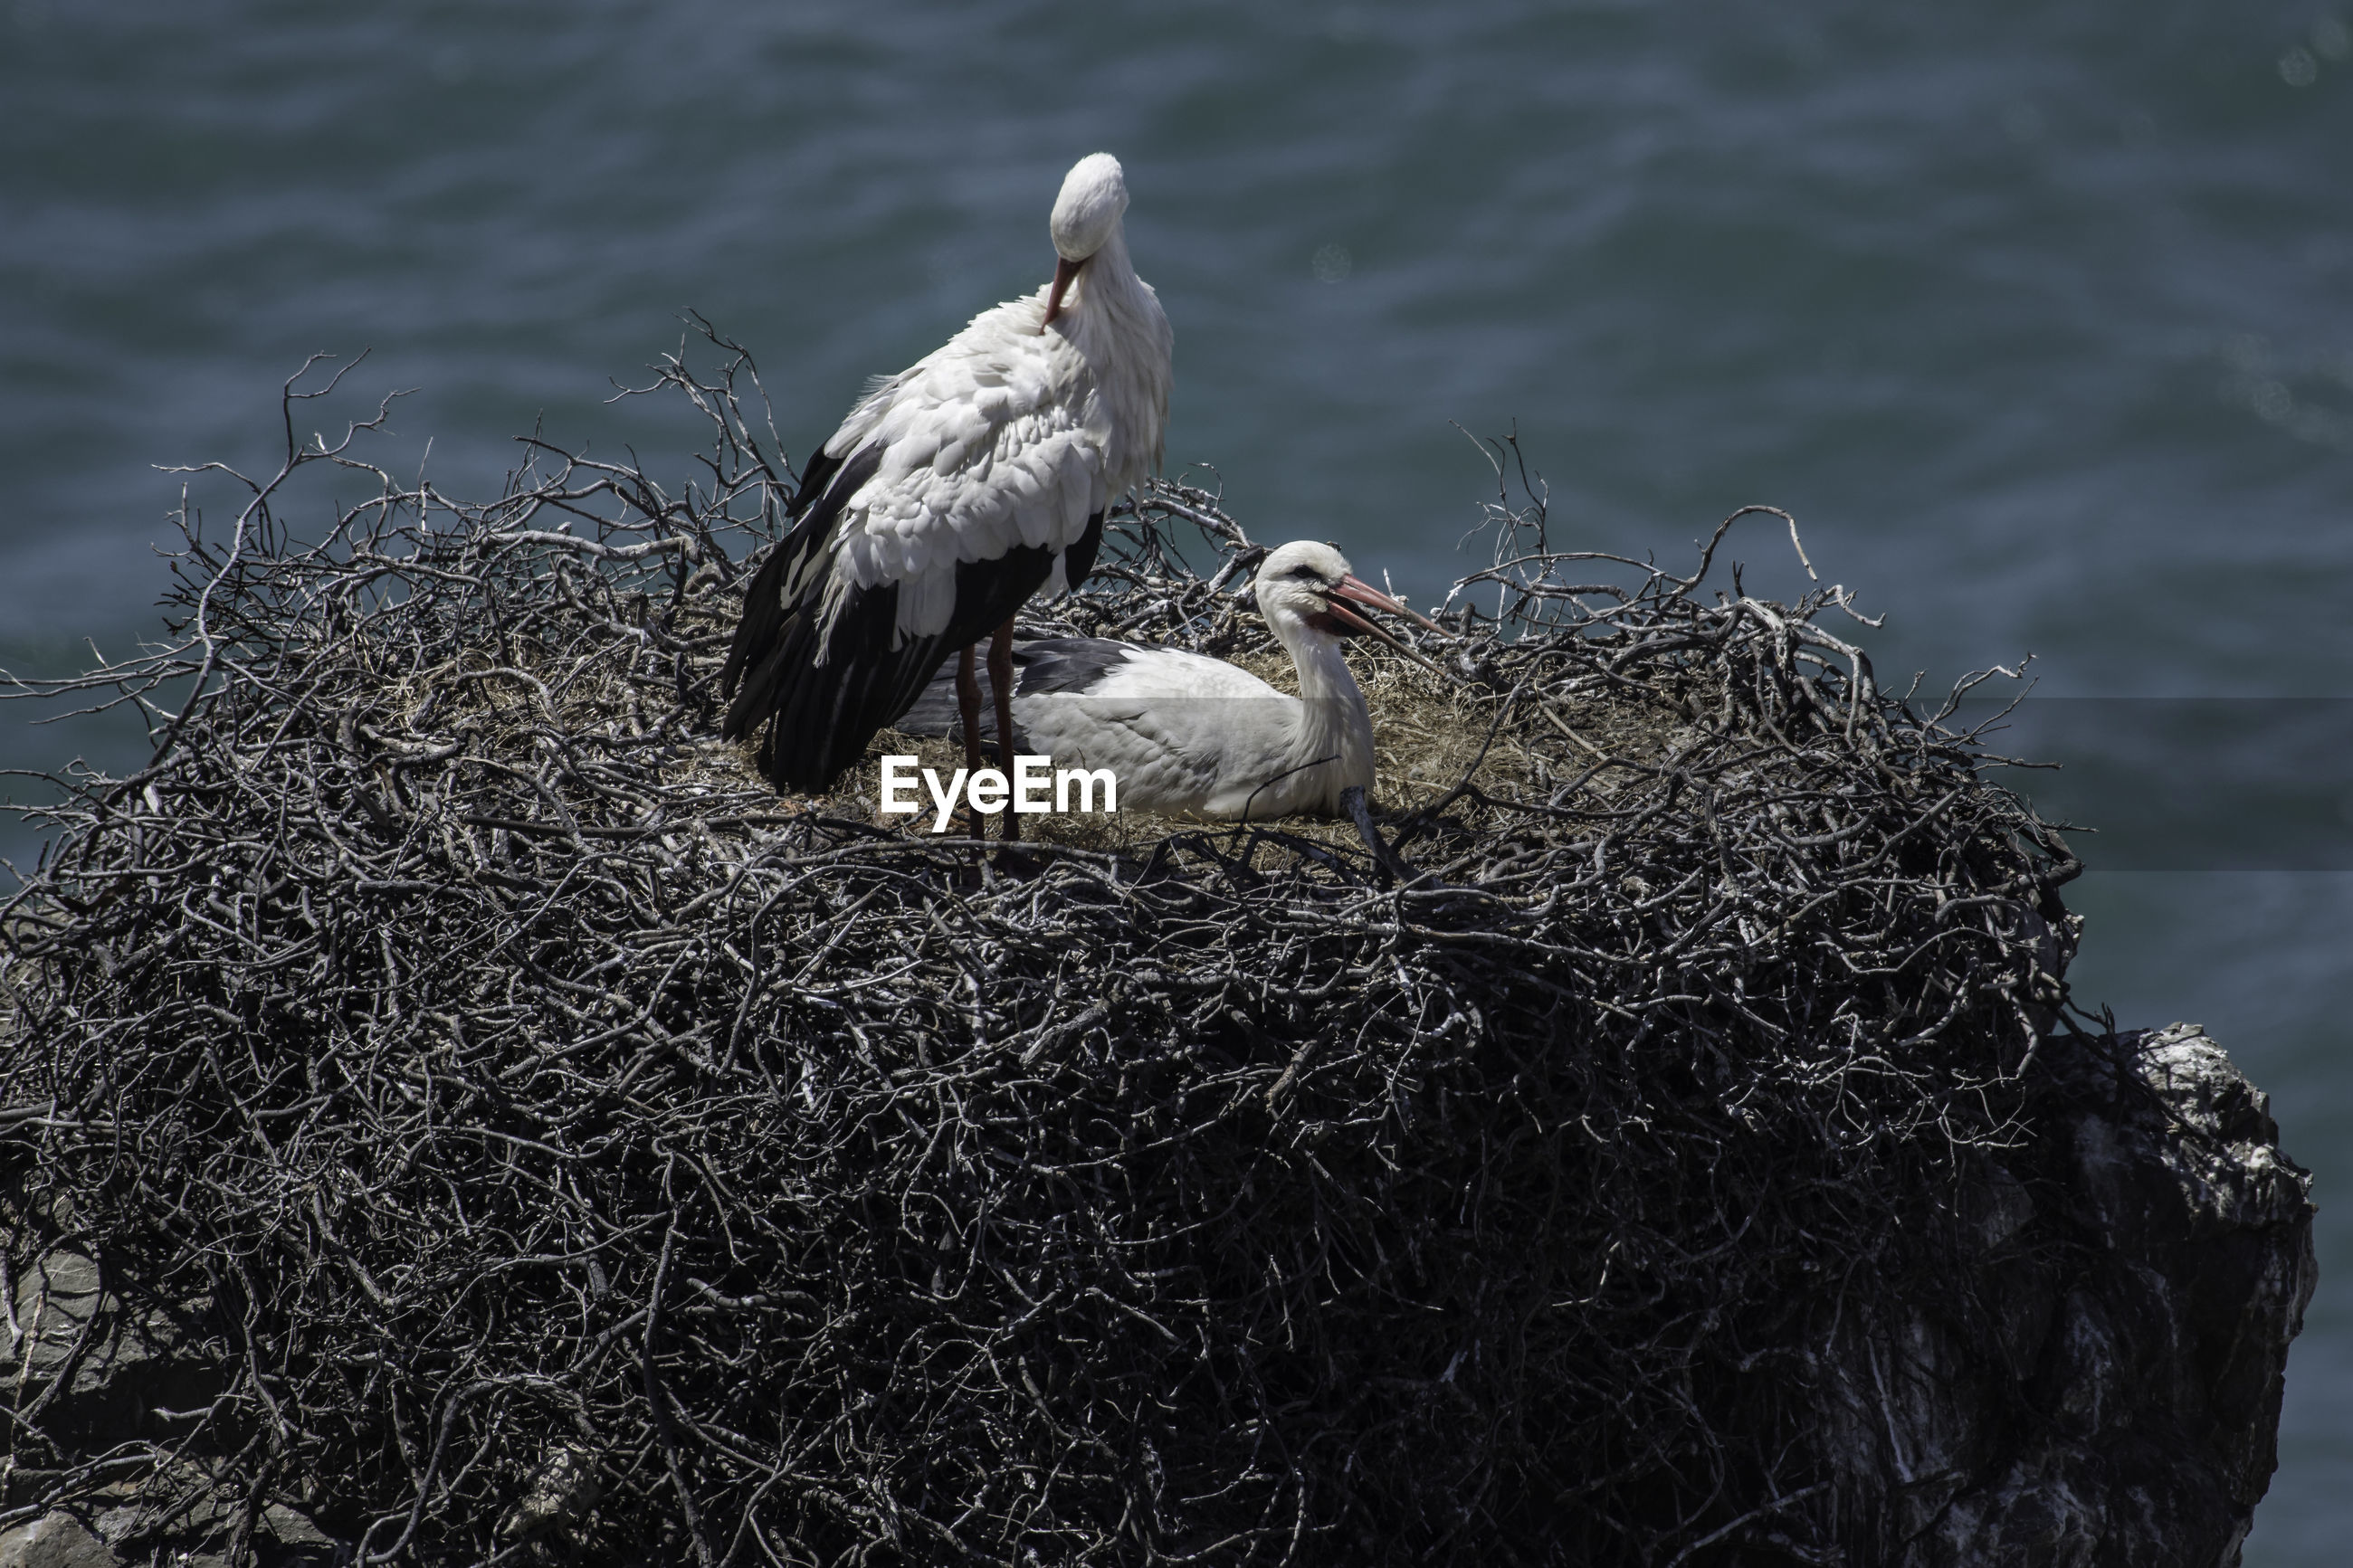 SEAGULLS PERCHING ON NEST